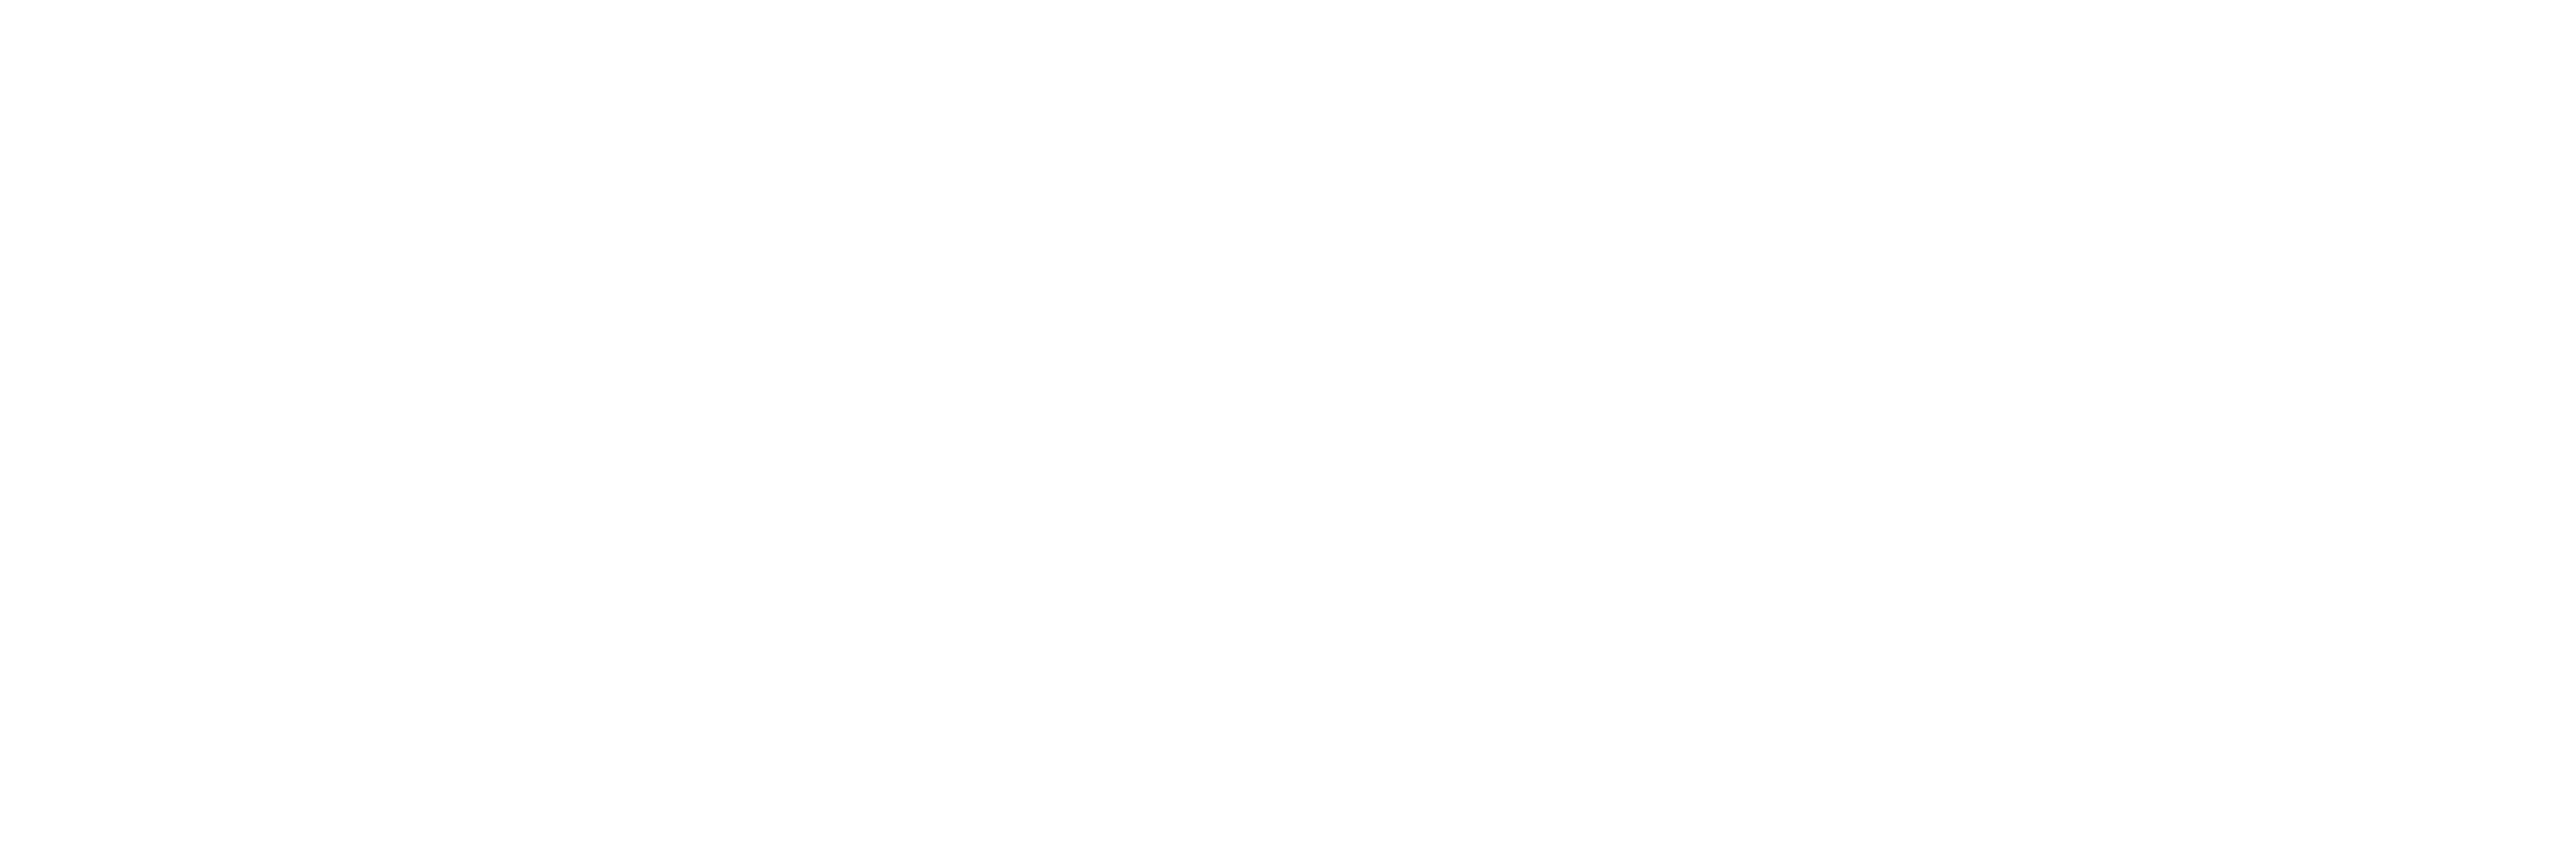 Graduate Students of Color Association (GSCA)